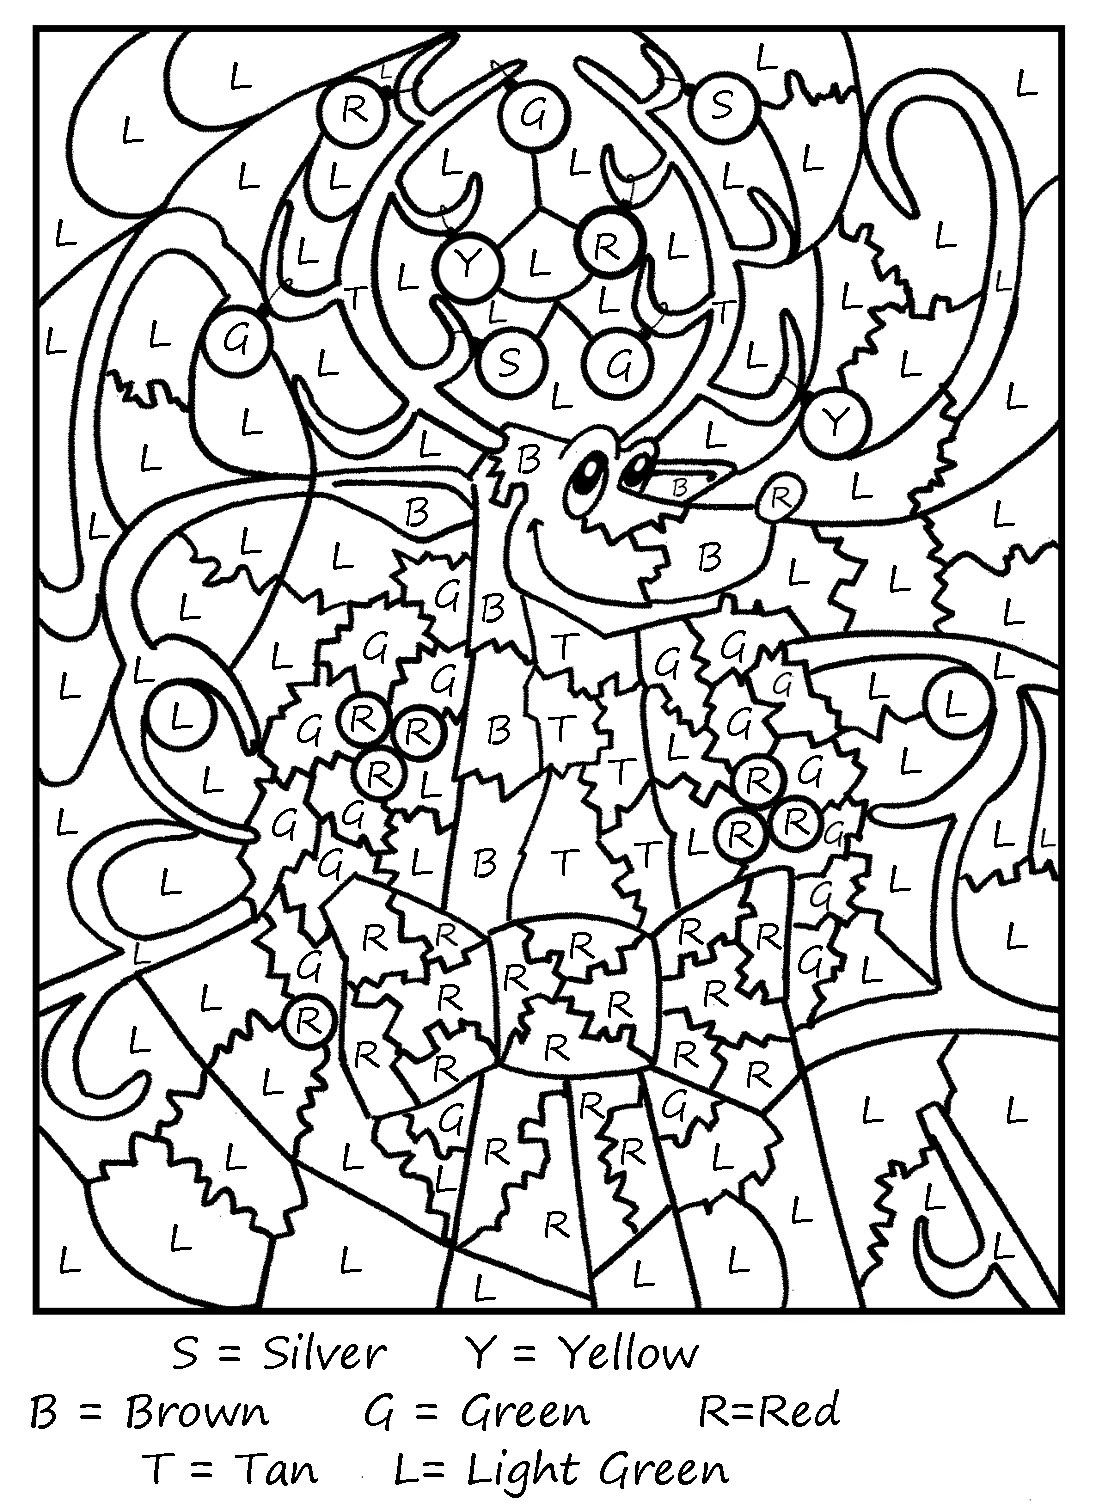 Color By Letters Coloring Pages Best Coloring Pages For Kids In 2020 Printable Christmas Coloring Pages Christmas Coloring Sheets Christmas Coloring Pages